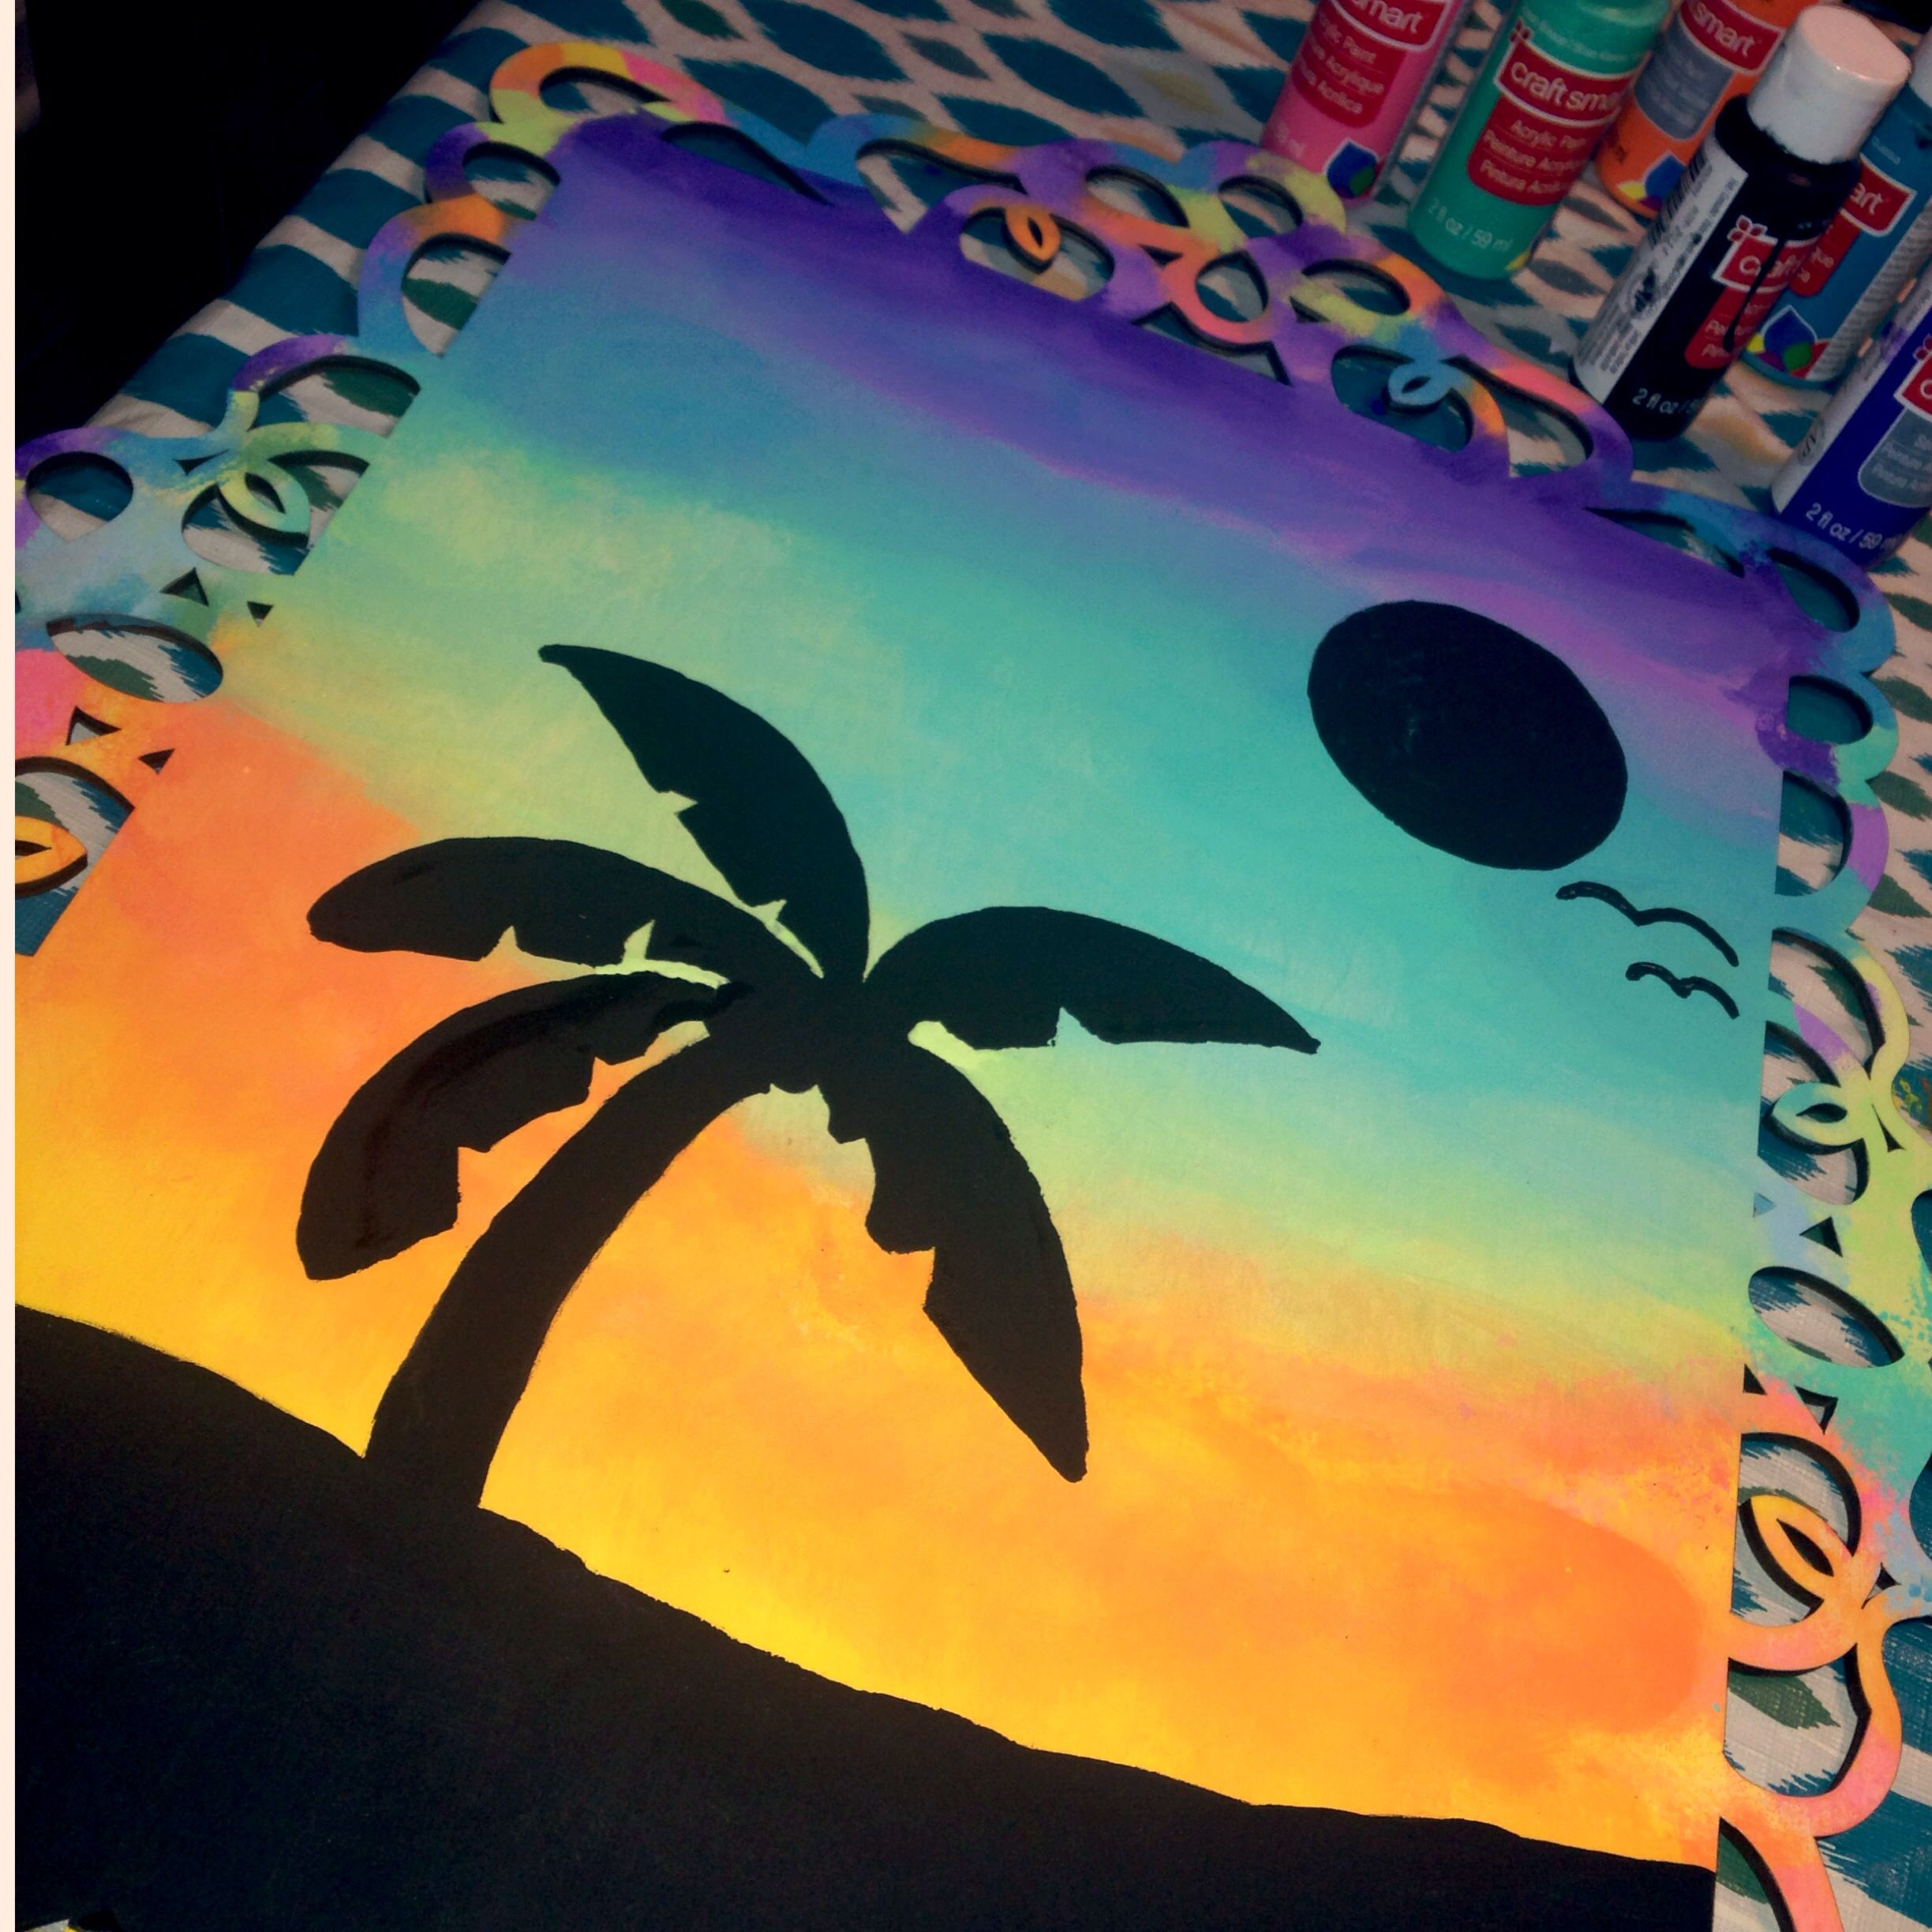 Tropical palm tree beach canvas painting diy craft ideas diys